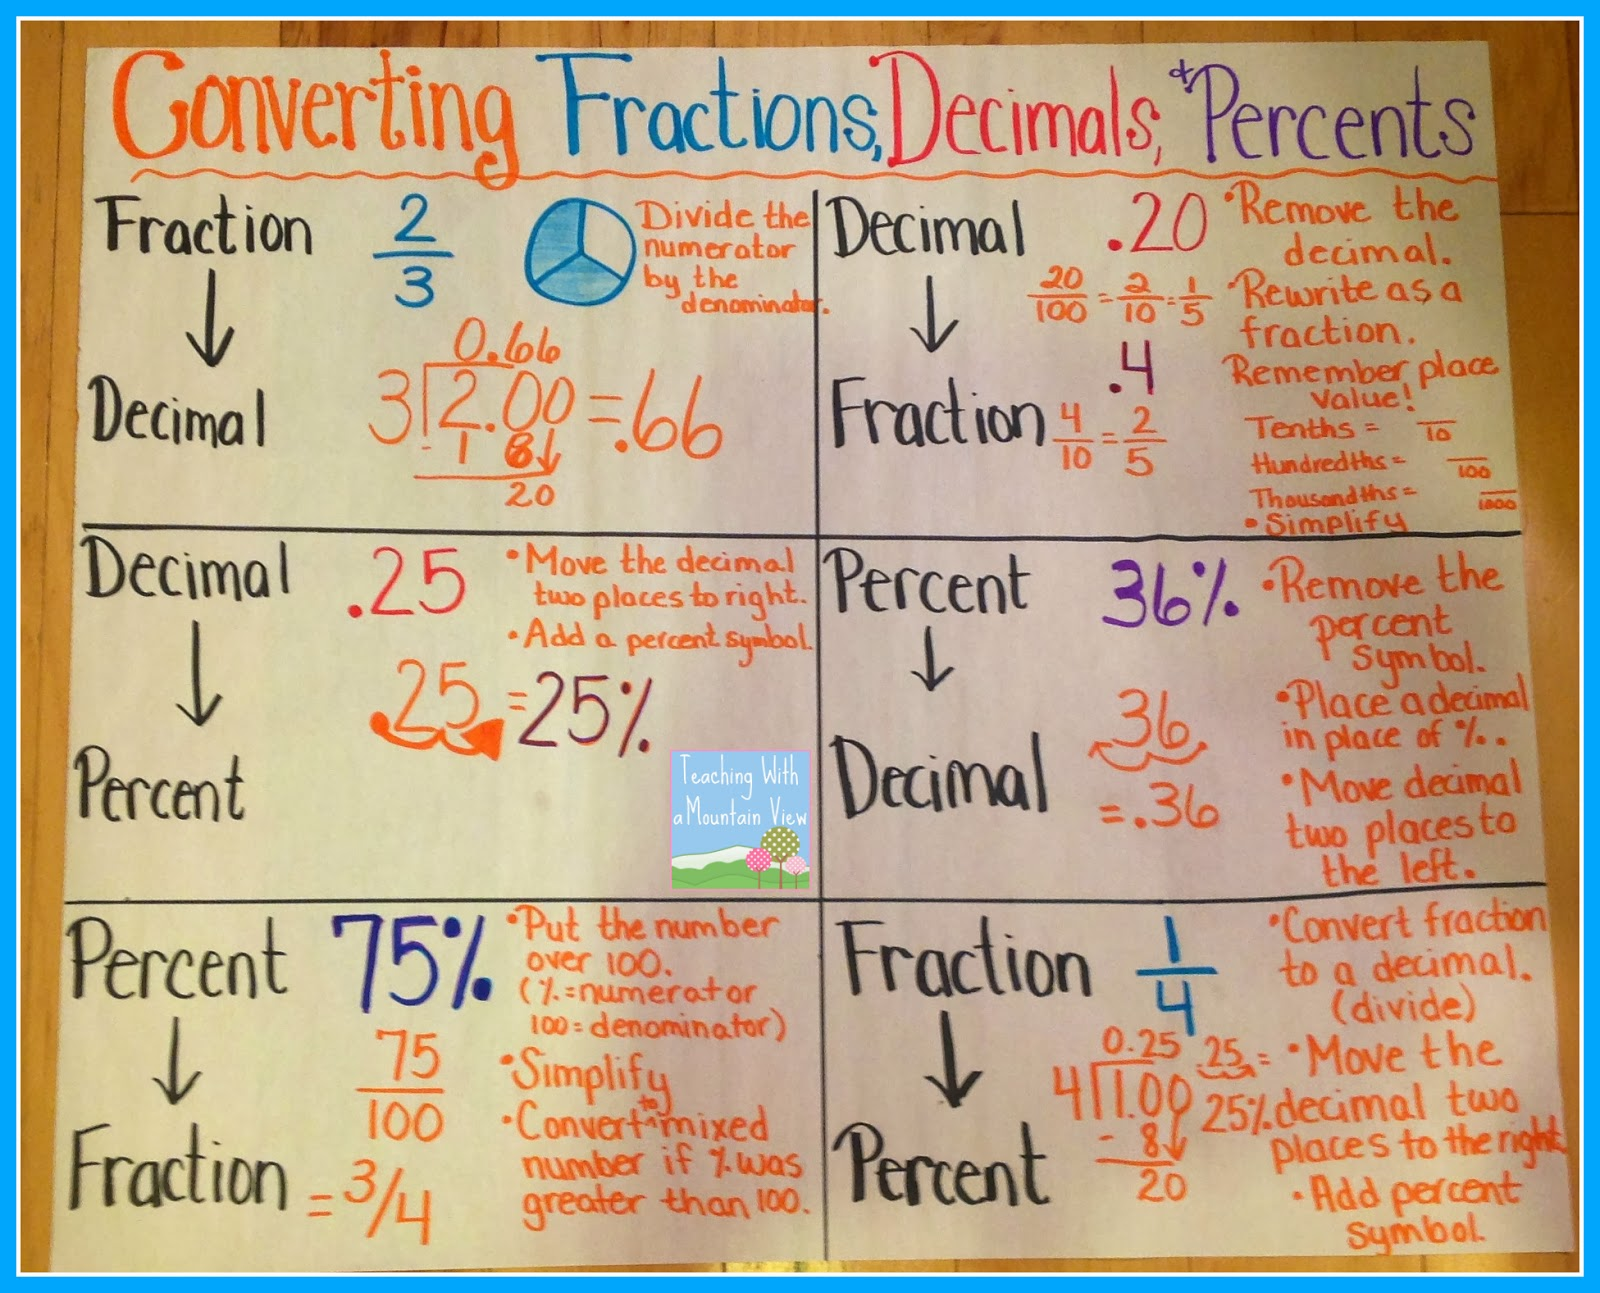 teaching with a mountain view: percents, decimals, fractions and a